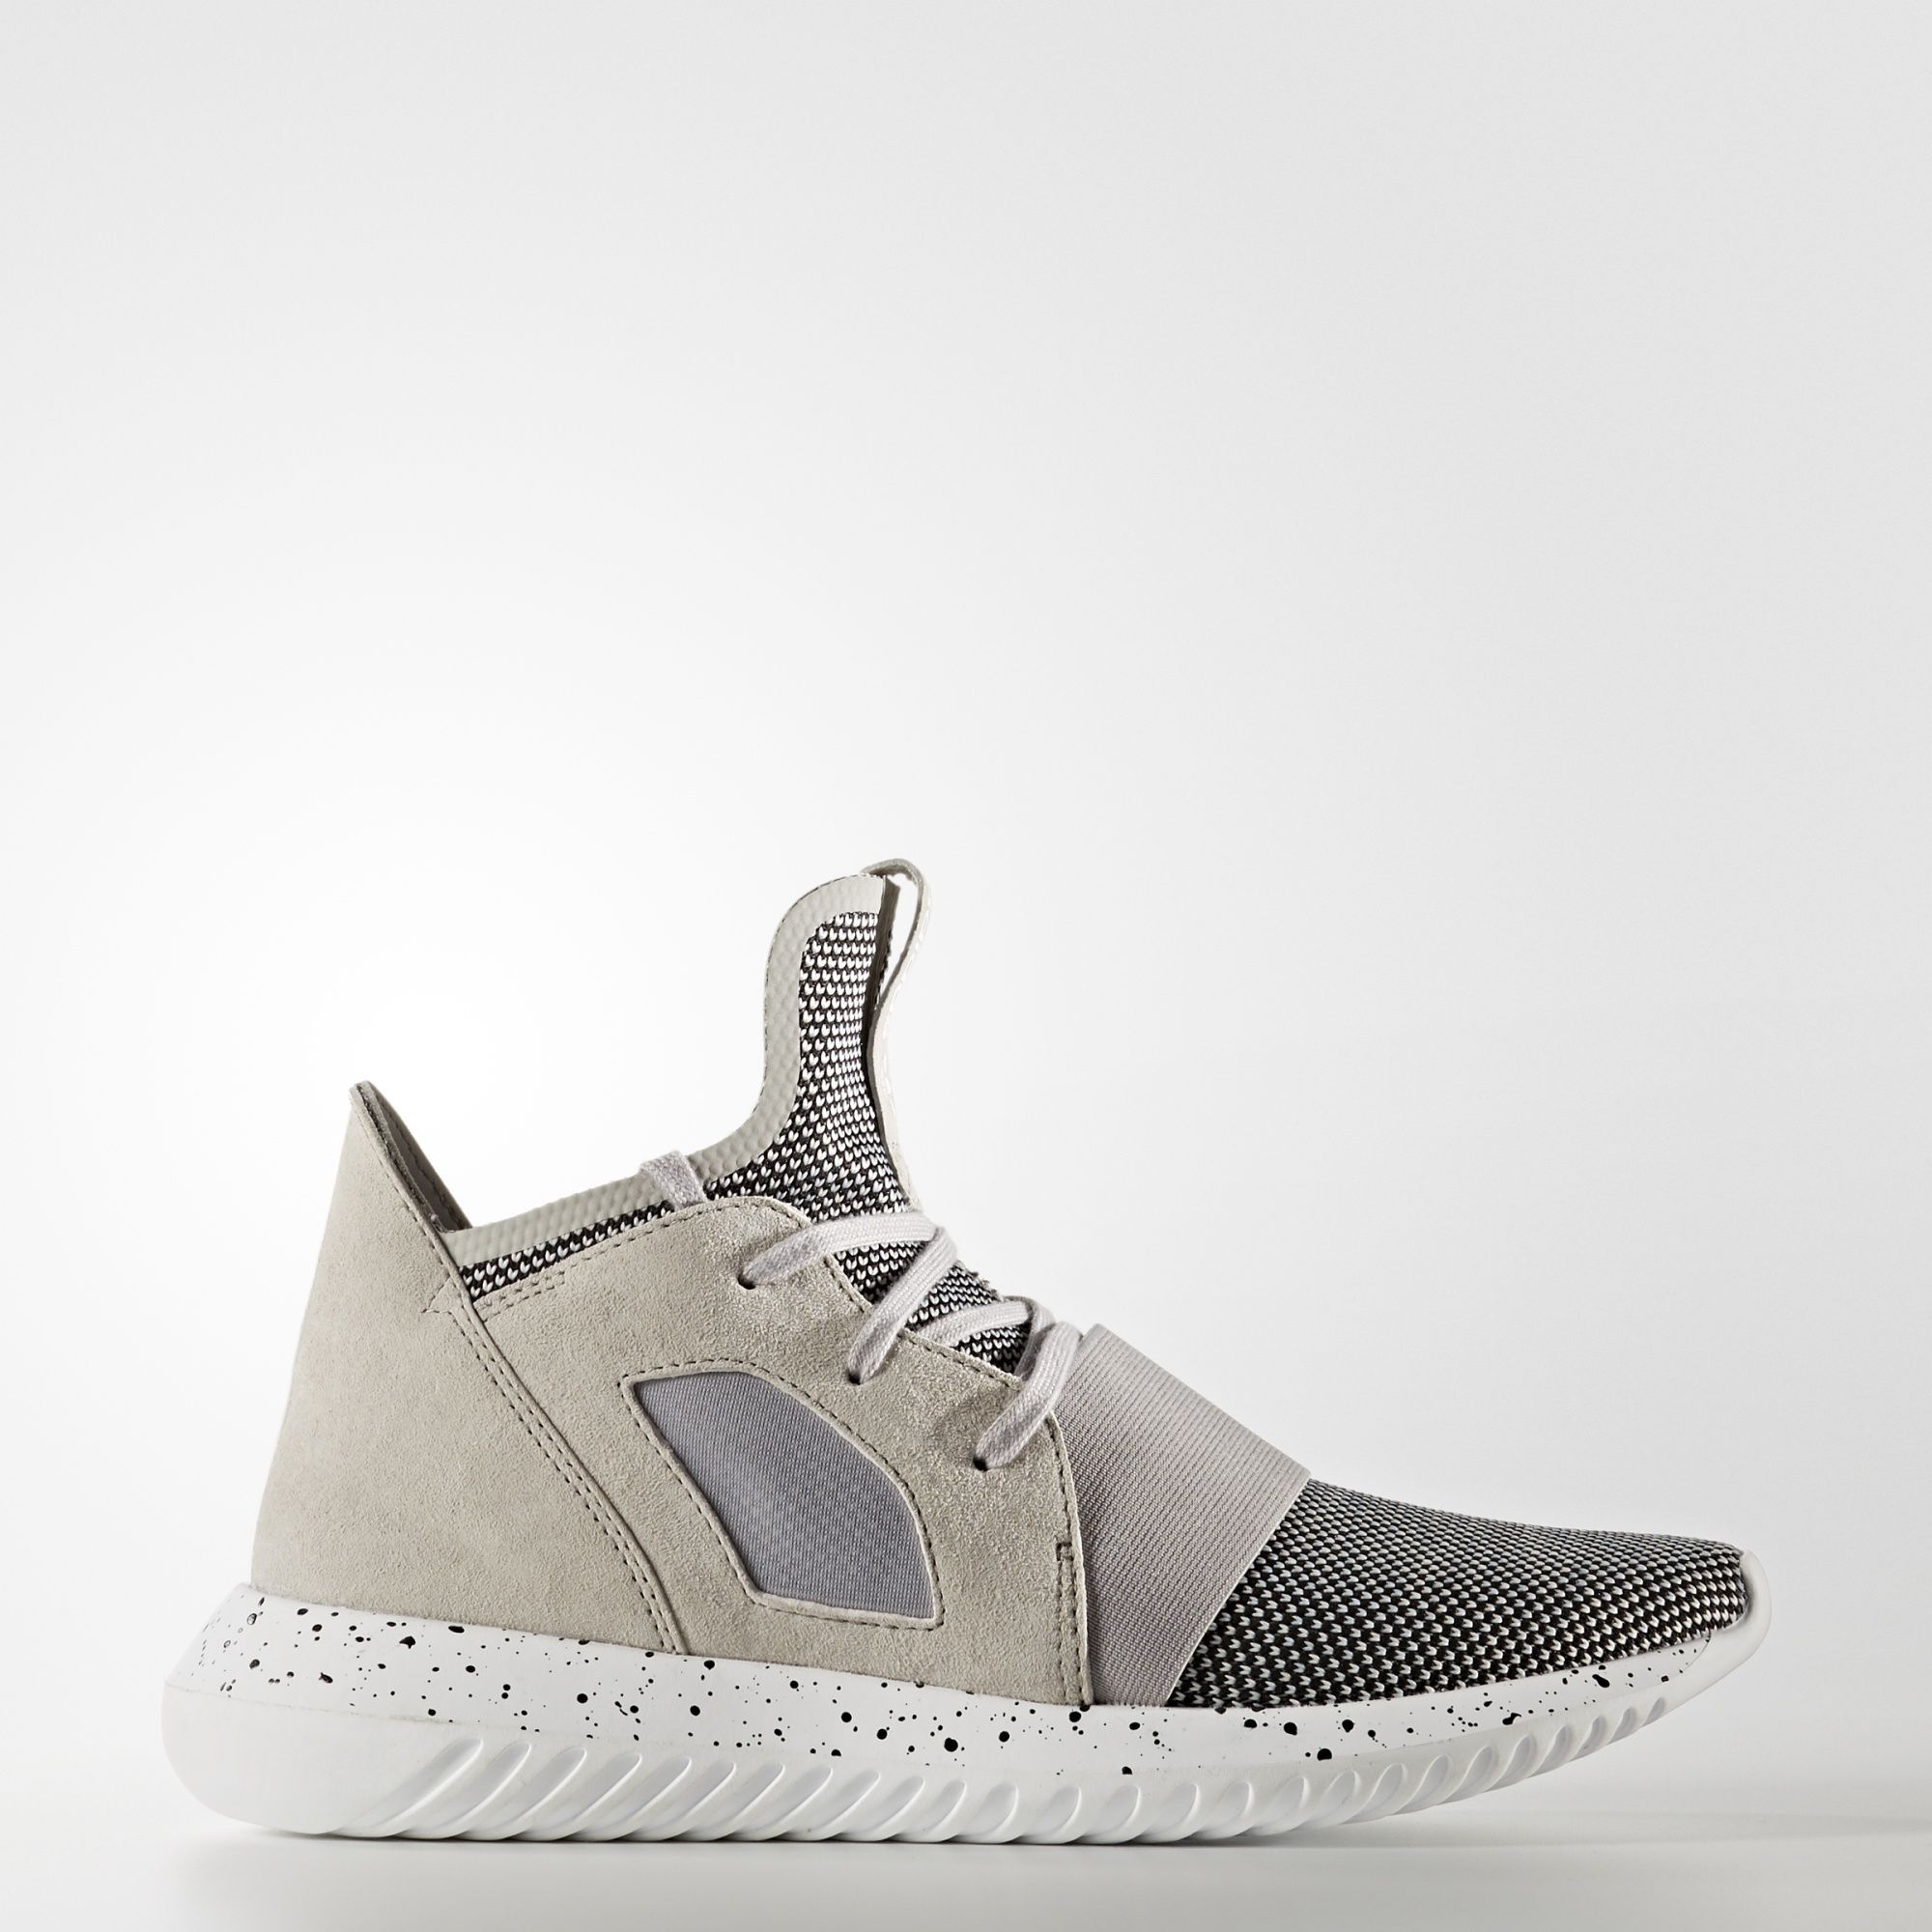 Just they ordered and they Just are on their way Woot Woot adidas 850532